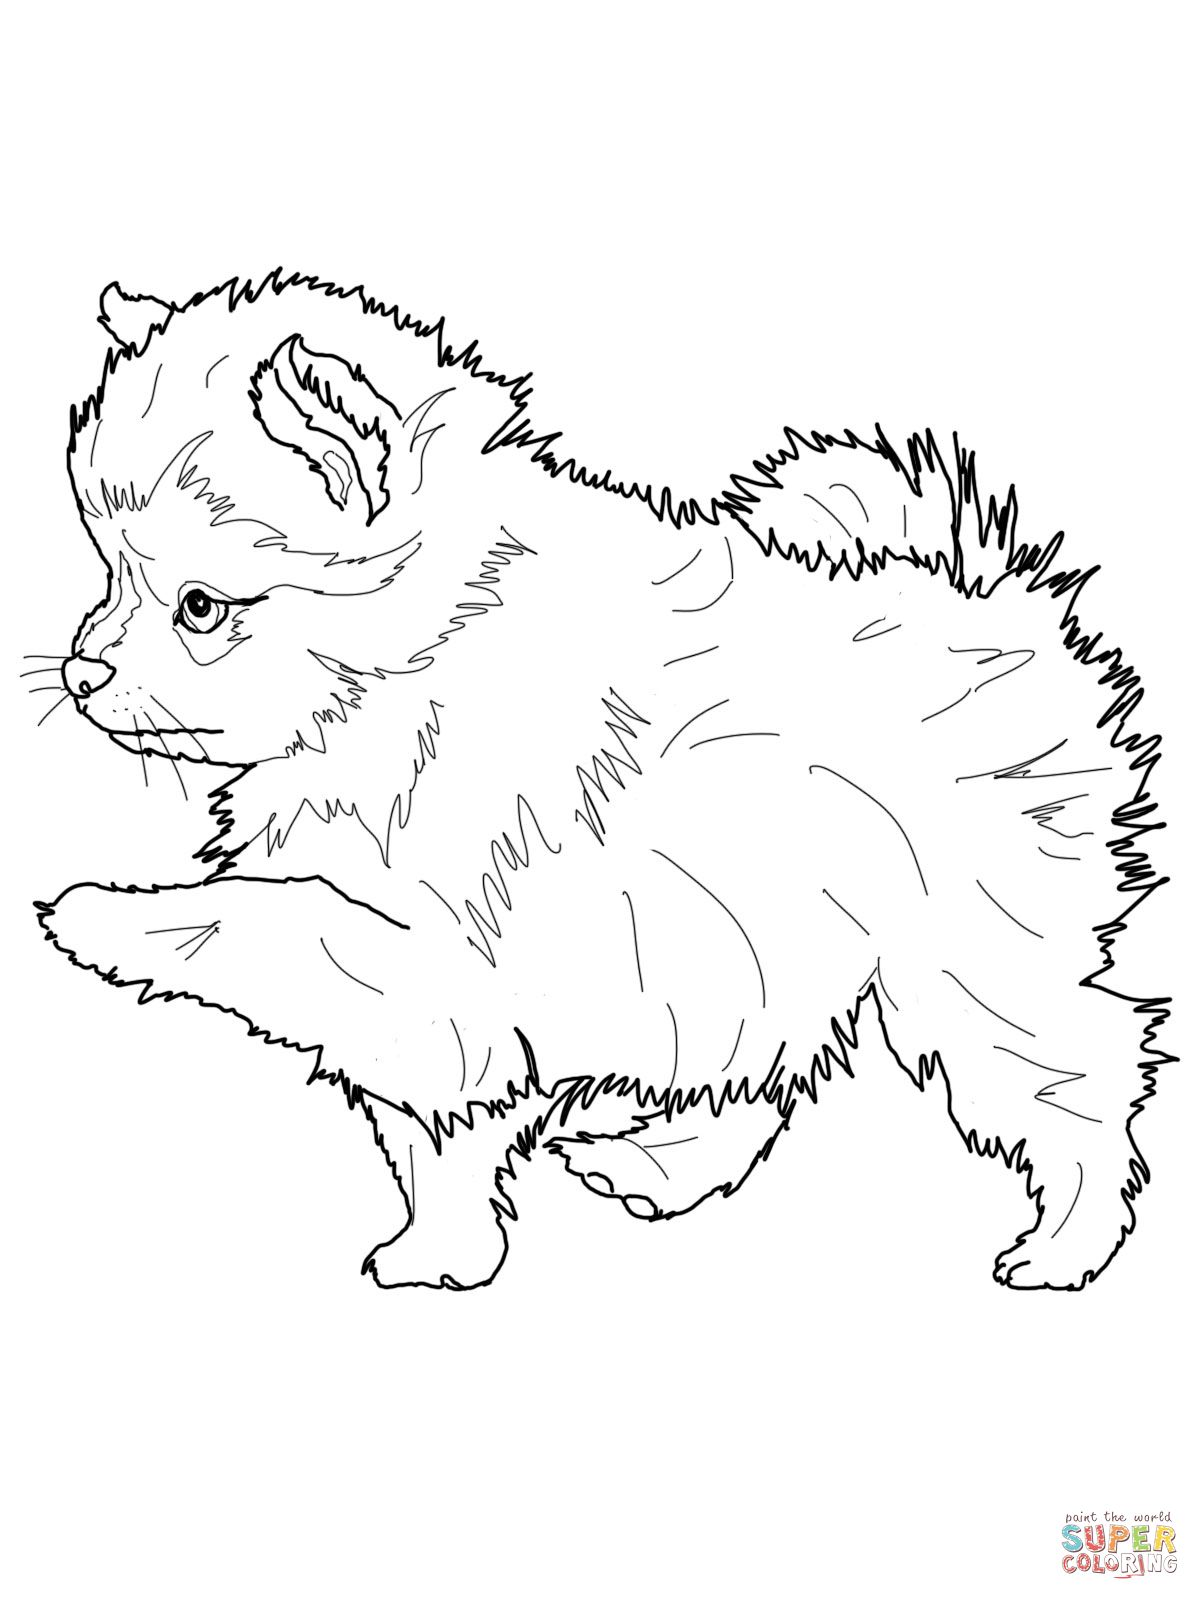 cute husky puppies coloring pages simon - Cute Husky Puppies Coloring Pages